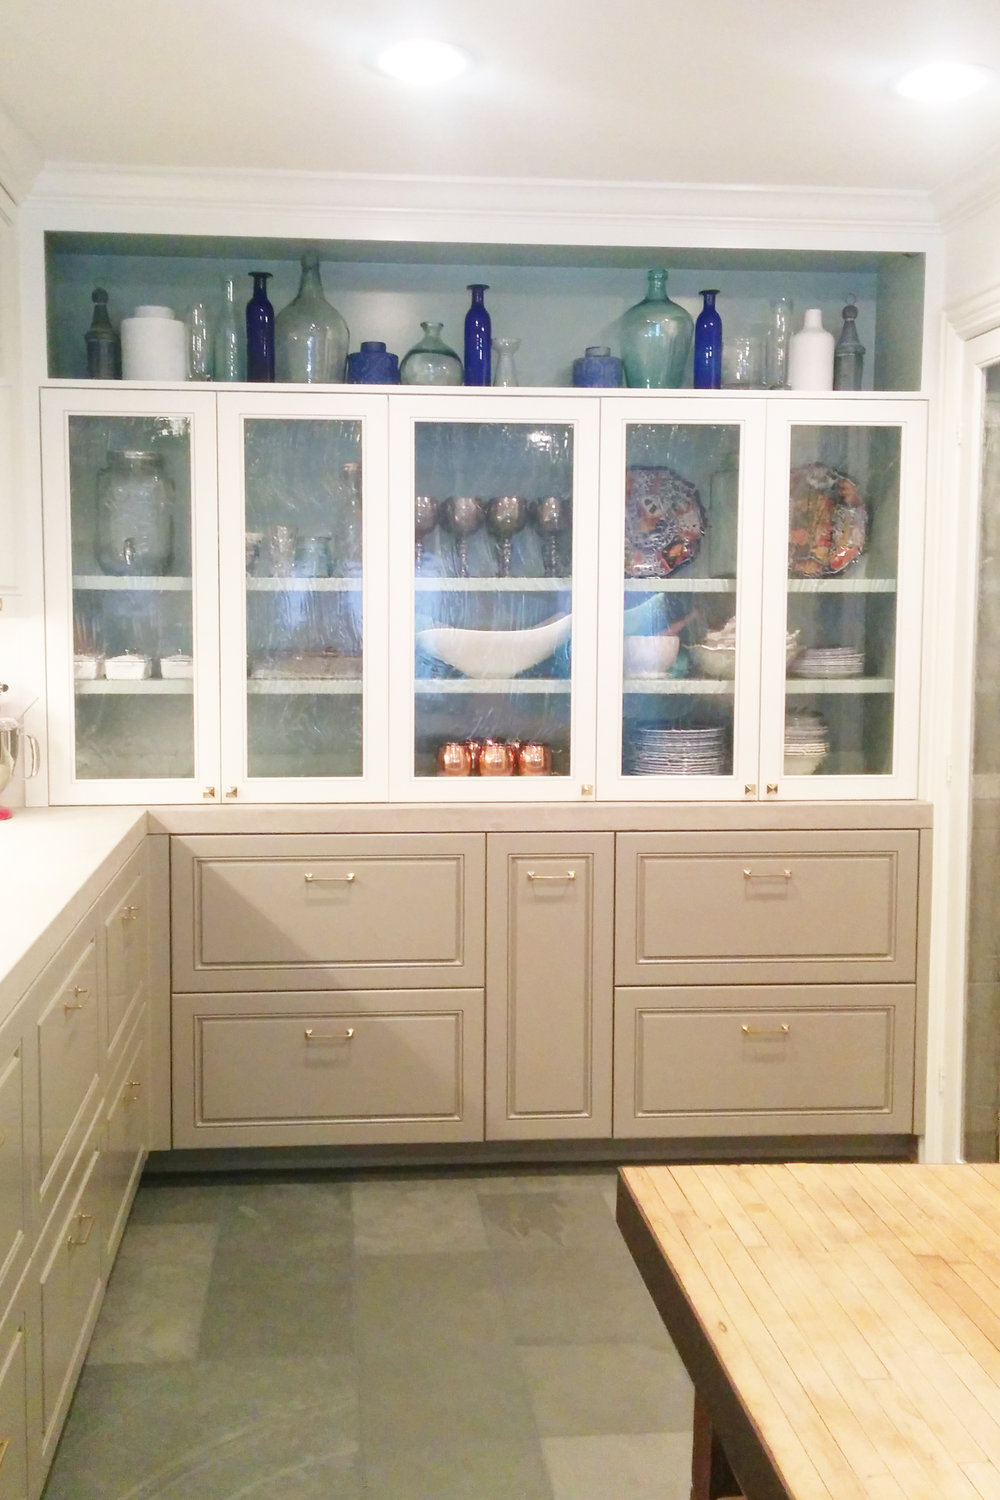 Houston kitchen remodel by Jamie House Design. Glass kitchen display.